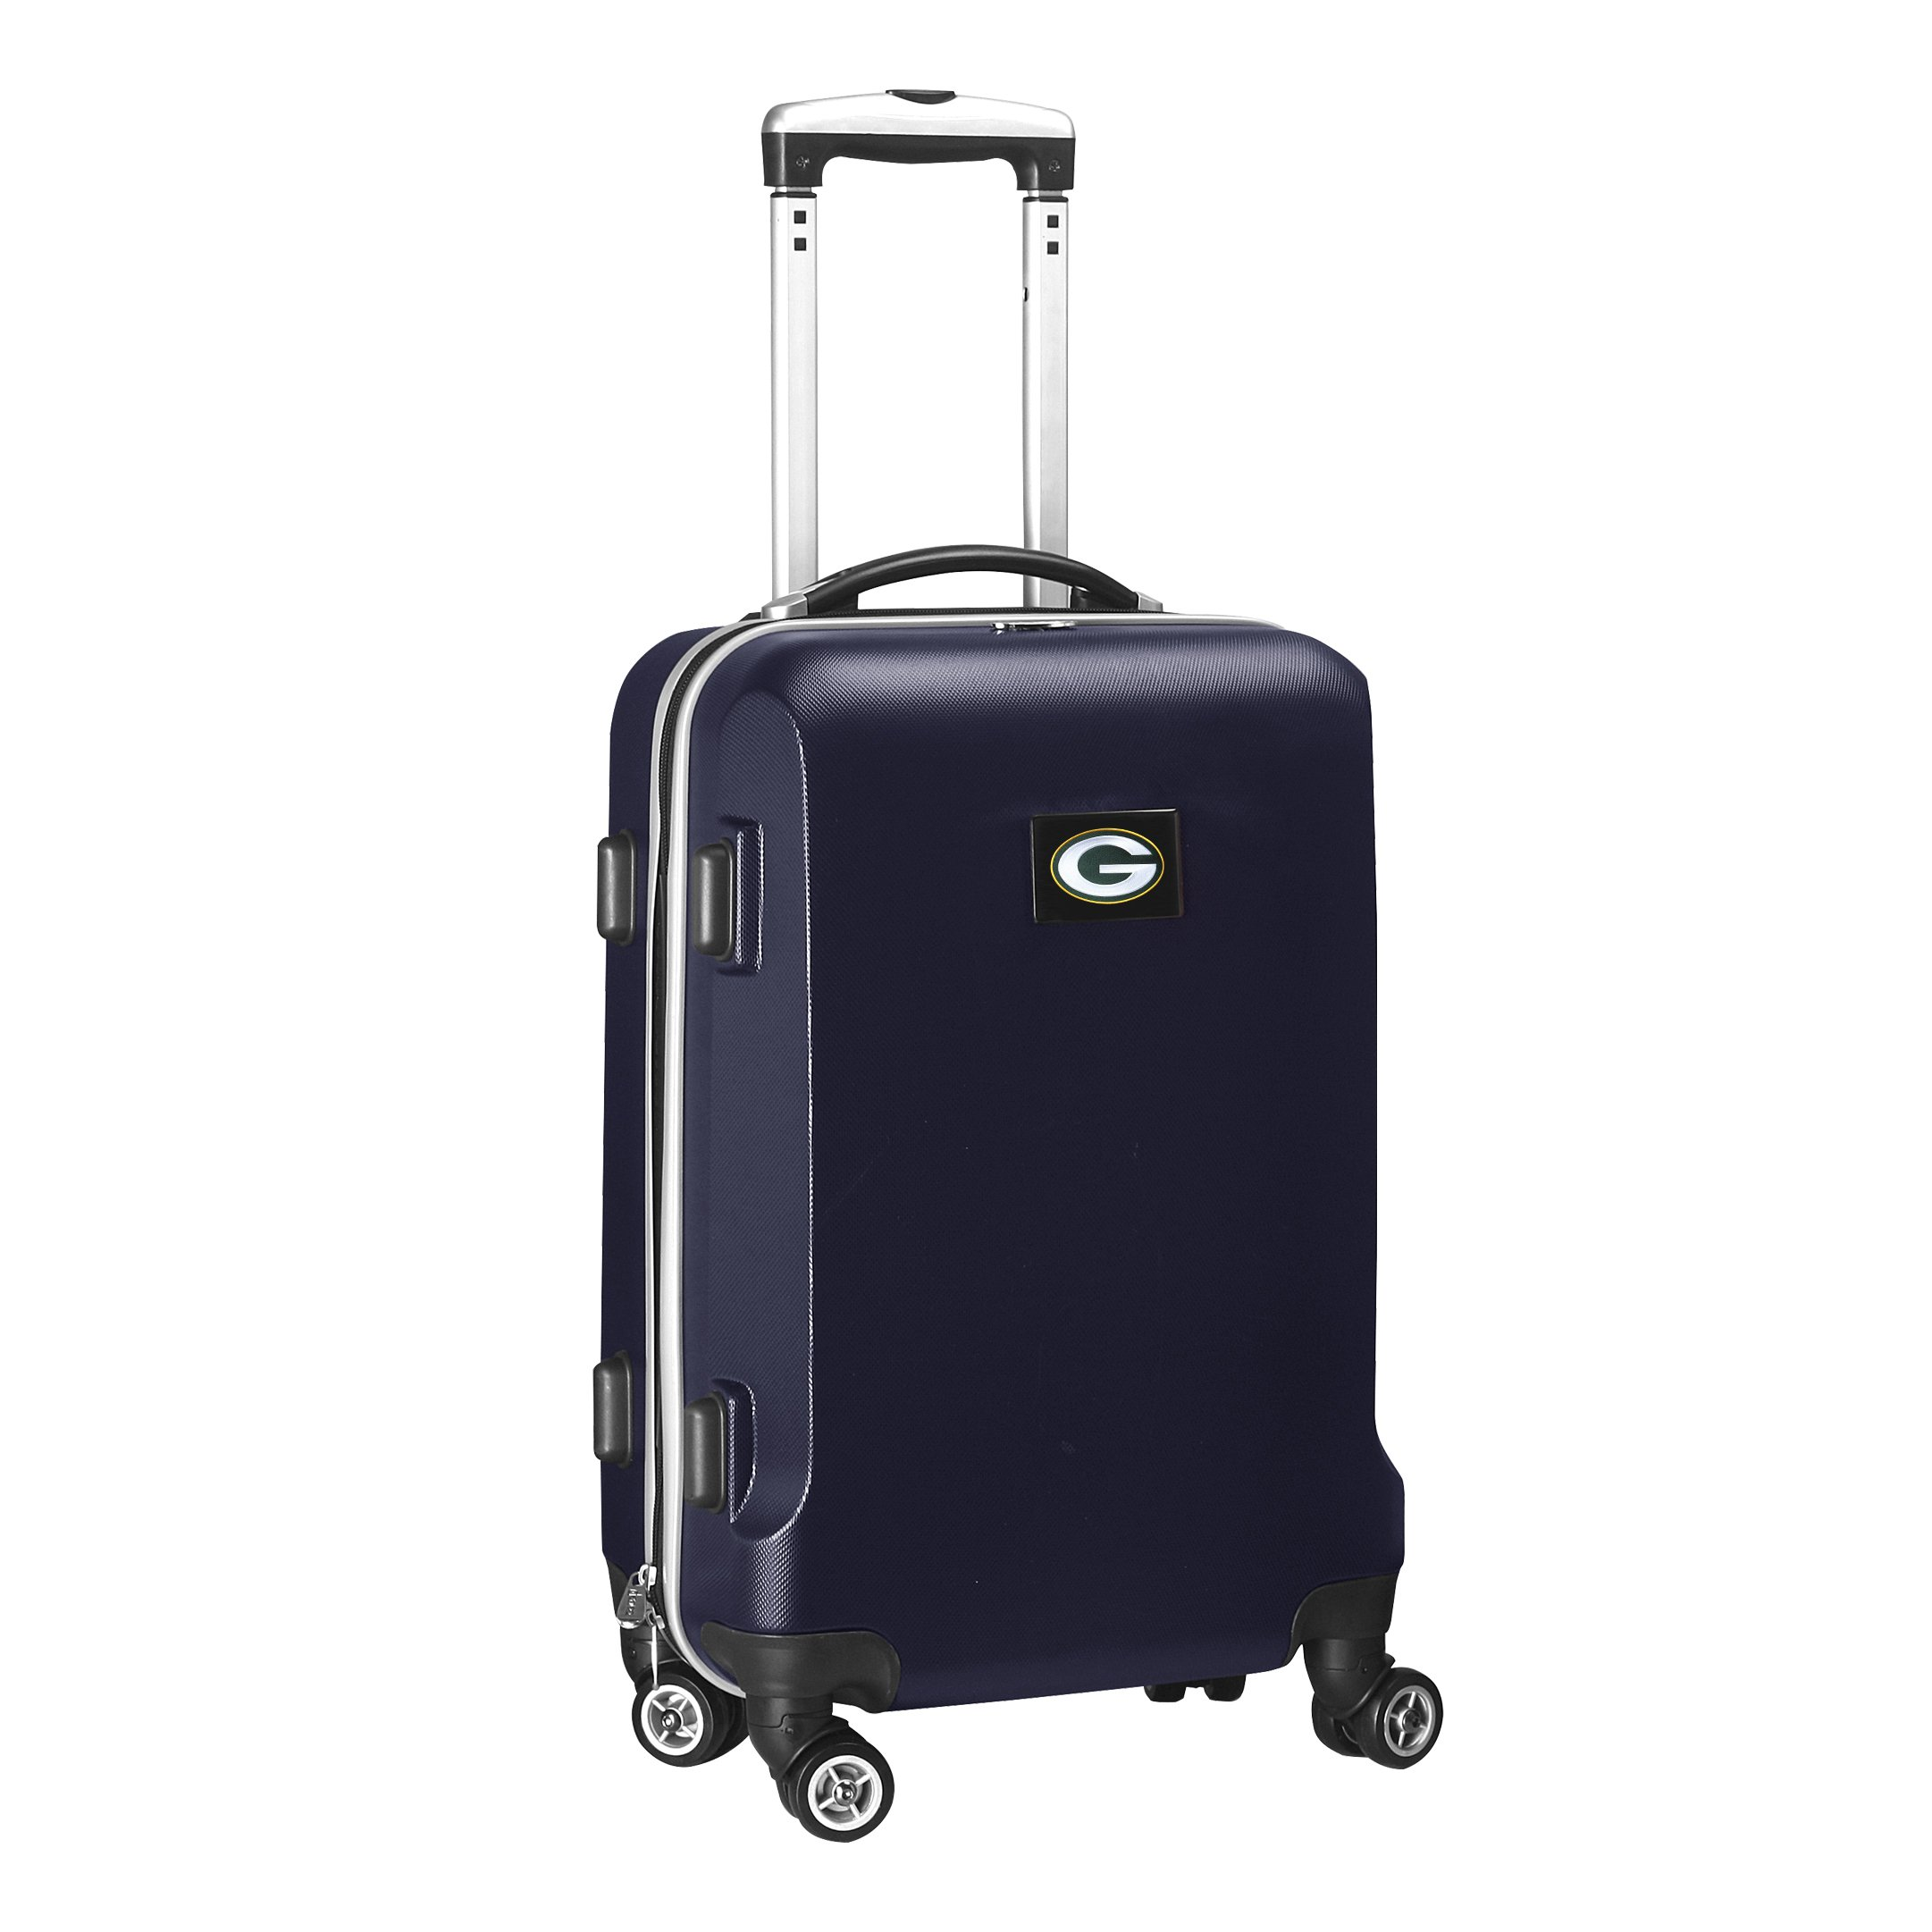 Denco NFL Green Bay Packers Carry-On Hardcase Luggage Spinner, Navy by Denco (Image #2)